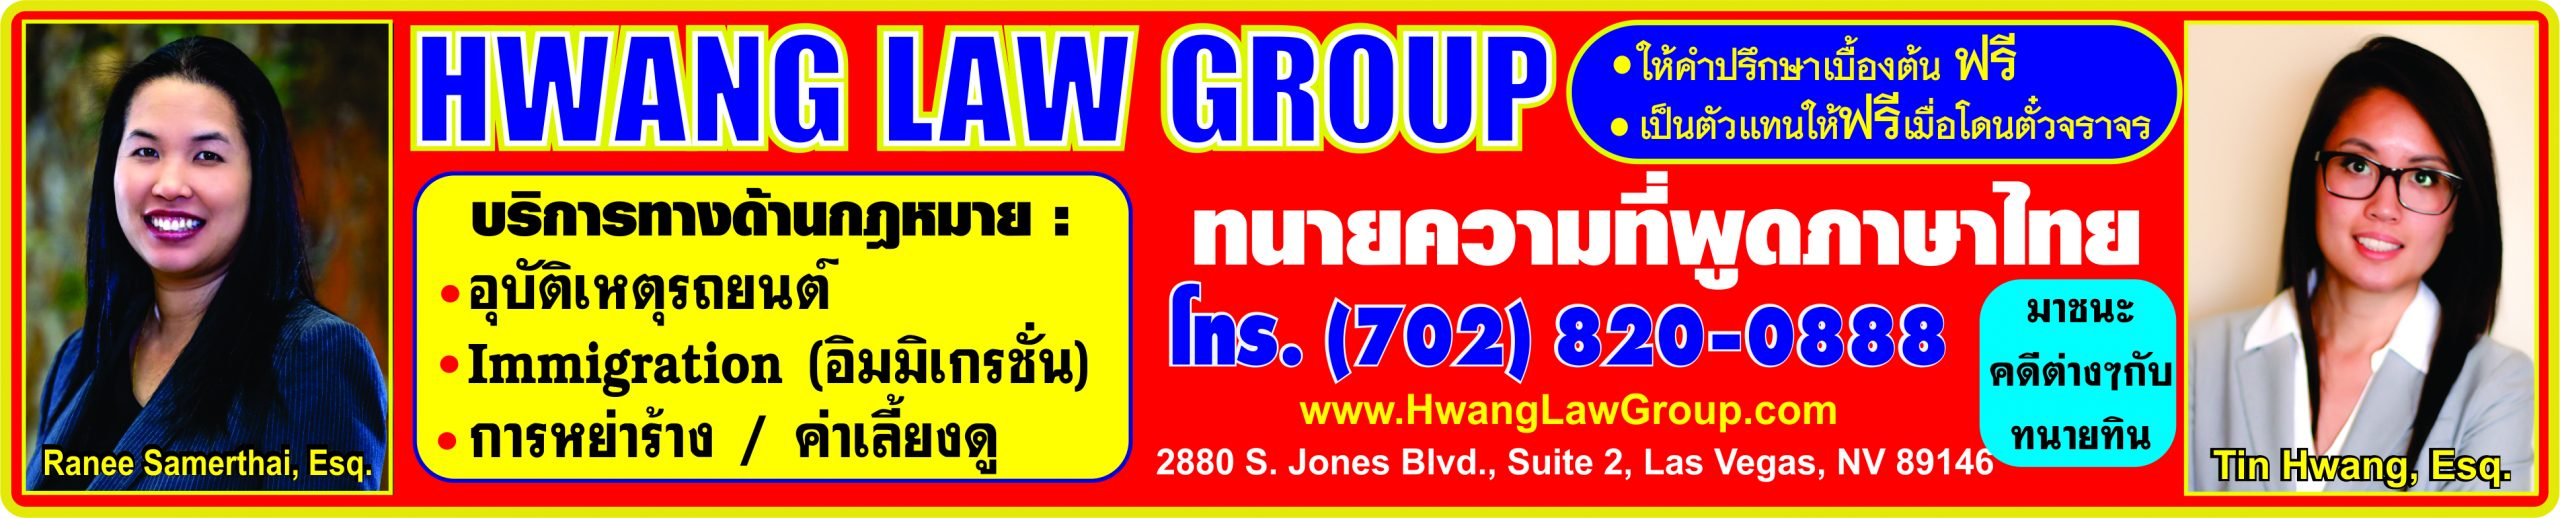 Hwang Law Group